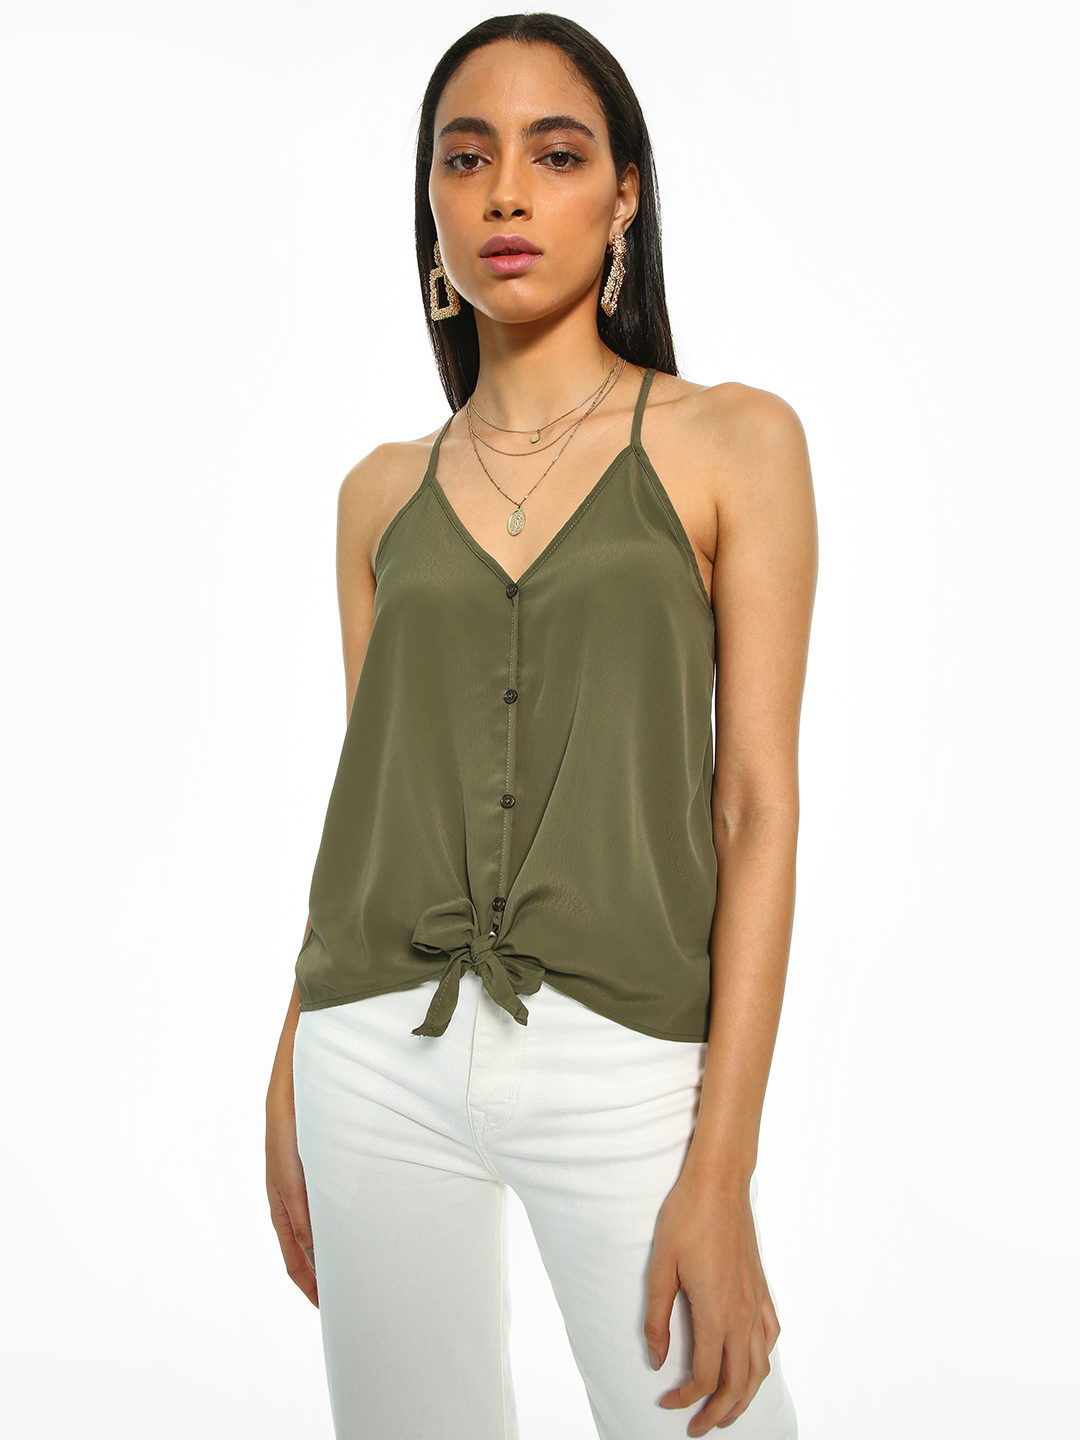 Iris Olive Tie-Knot Button-Down Top 1